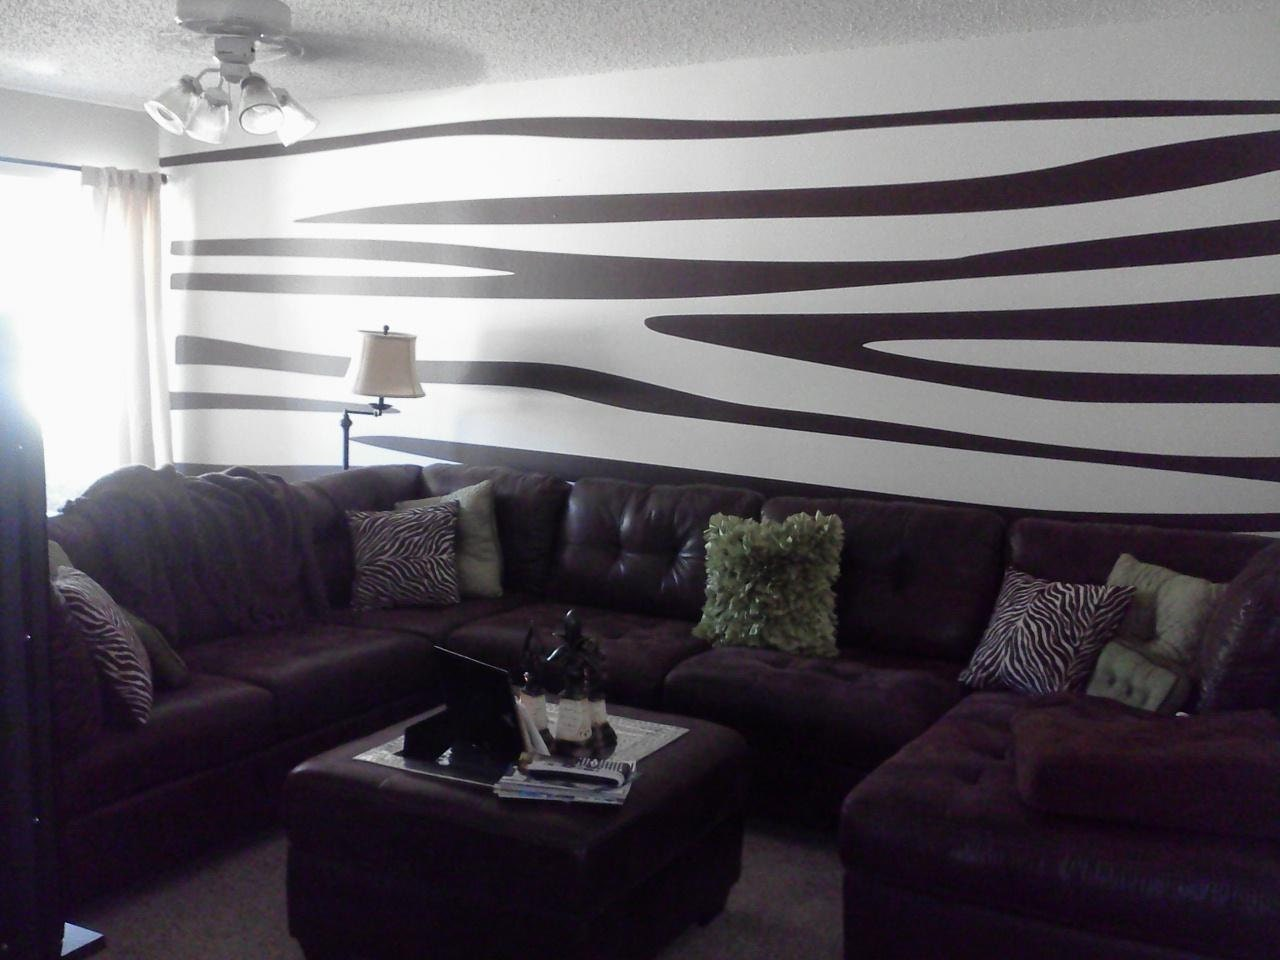 Zebra Print Wall Decal - Zebra stripe wall decals